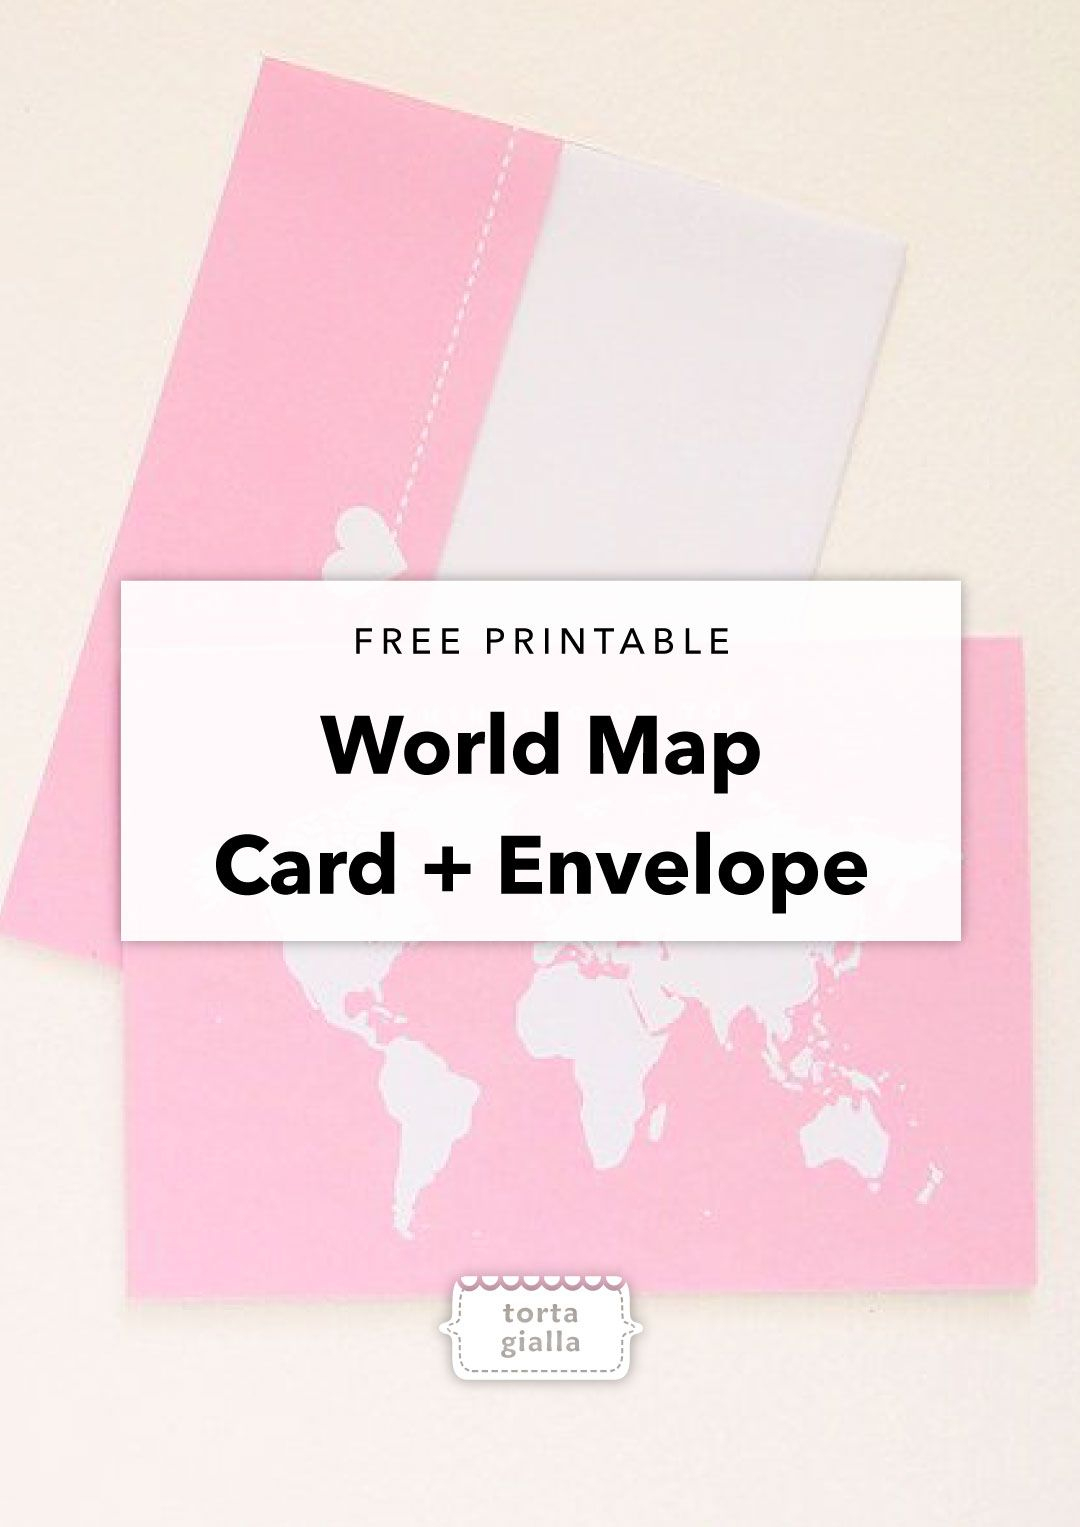 Free Printable Thinking Of You World Map Card And Envelope - Free Printable Thinking Of You Cards